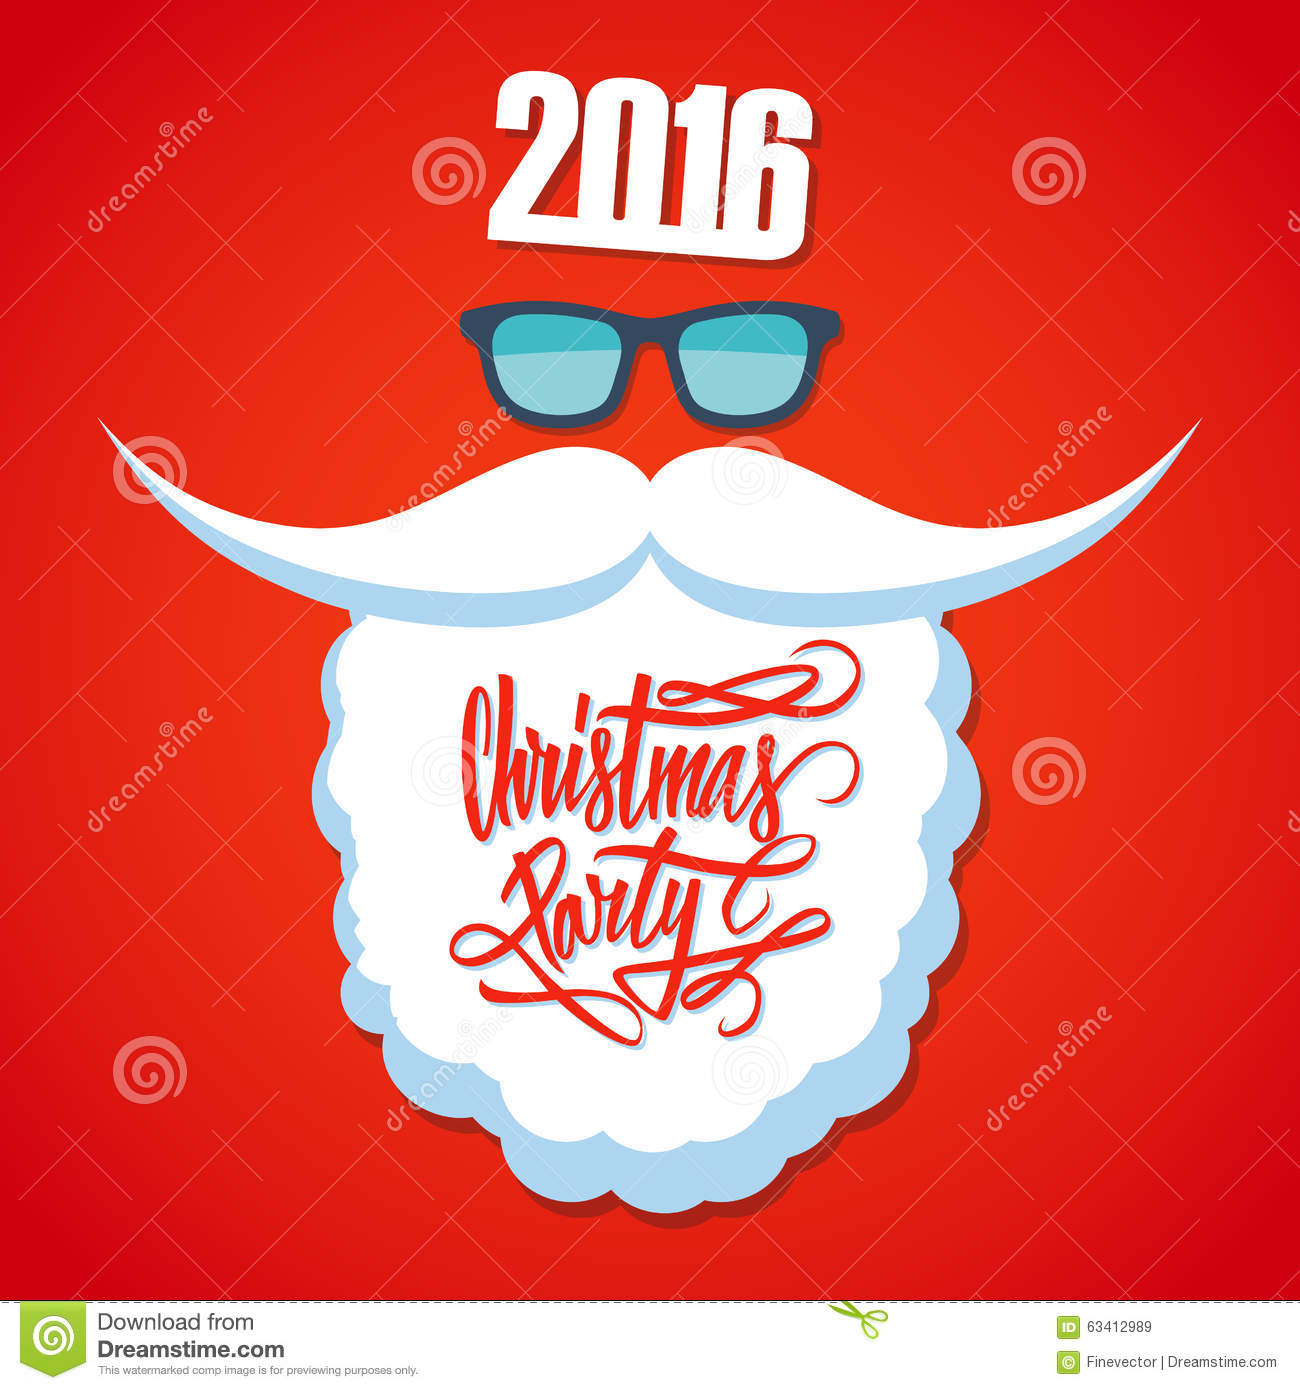 Poster design 2016 - Christmas Poster For Party New Year 2016 Christmas Party Hand Drawn Text Design